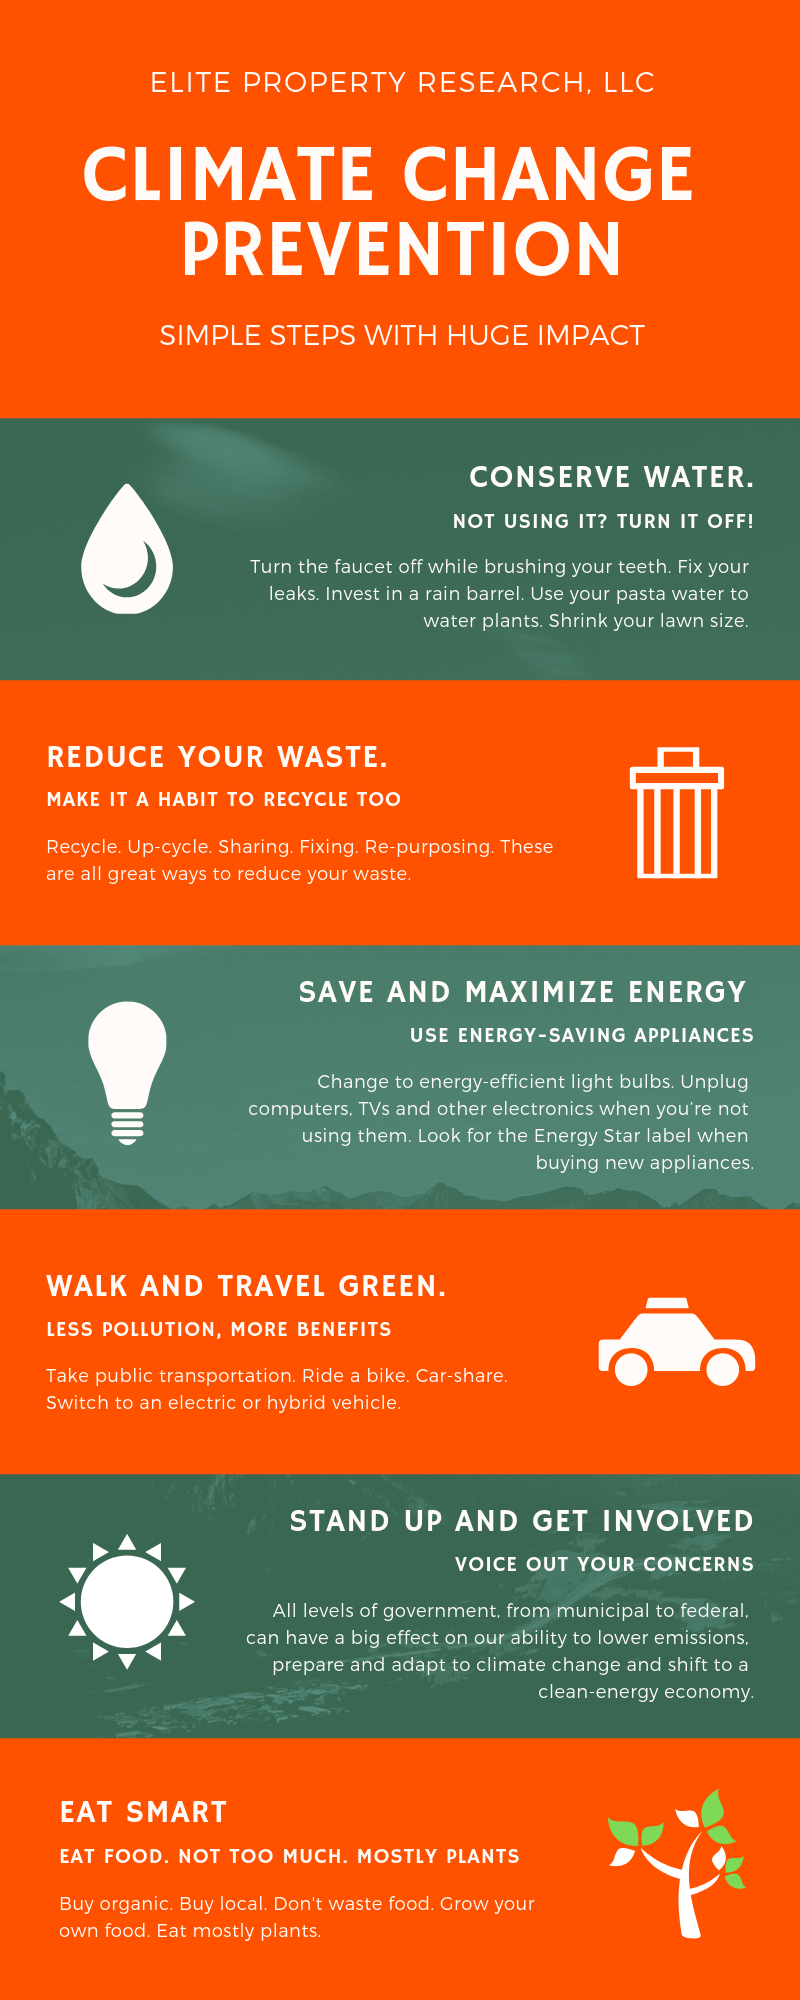 Less pollution, more benefits